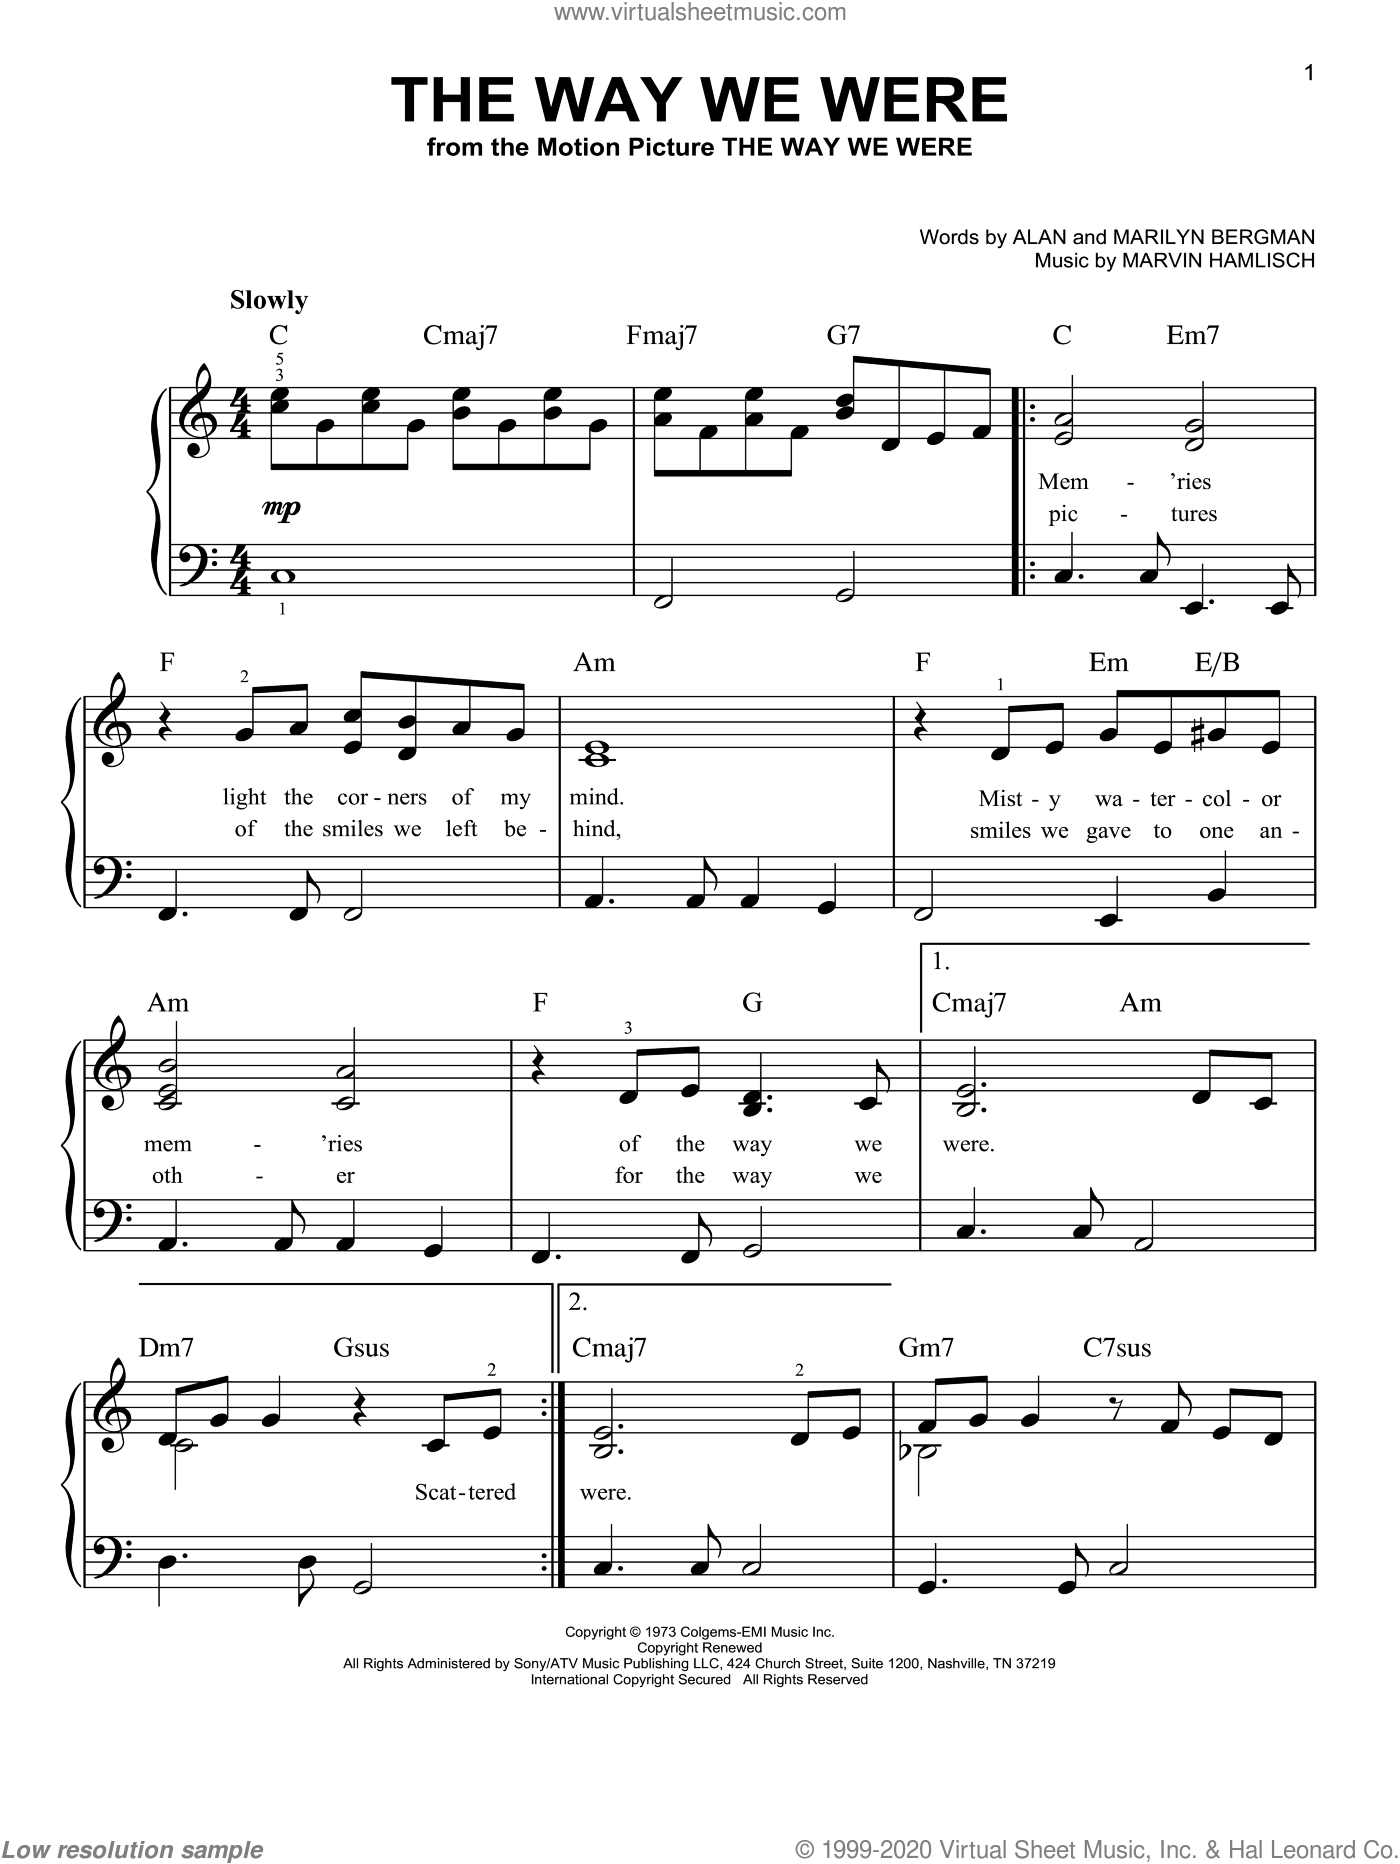 The Way We Were sheet music for piano solo by Marvin Hamlisch, Barbra Streisand, Alan Bergman and Marilyn Bergman. Score Image Preview.